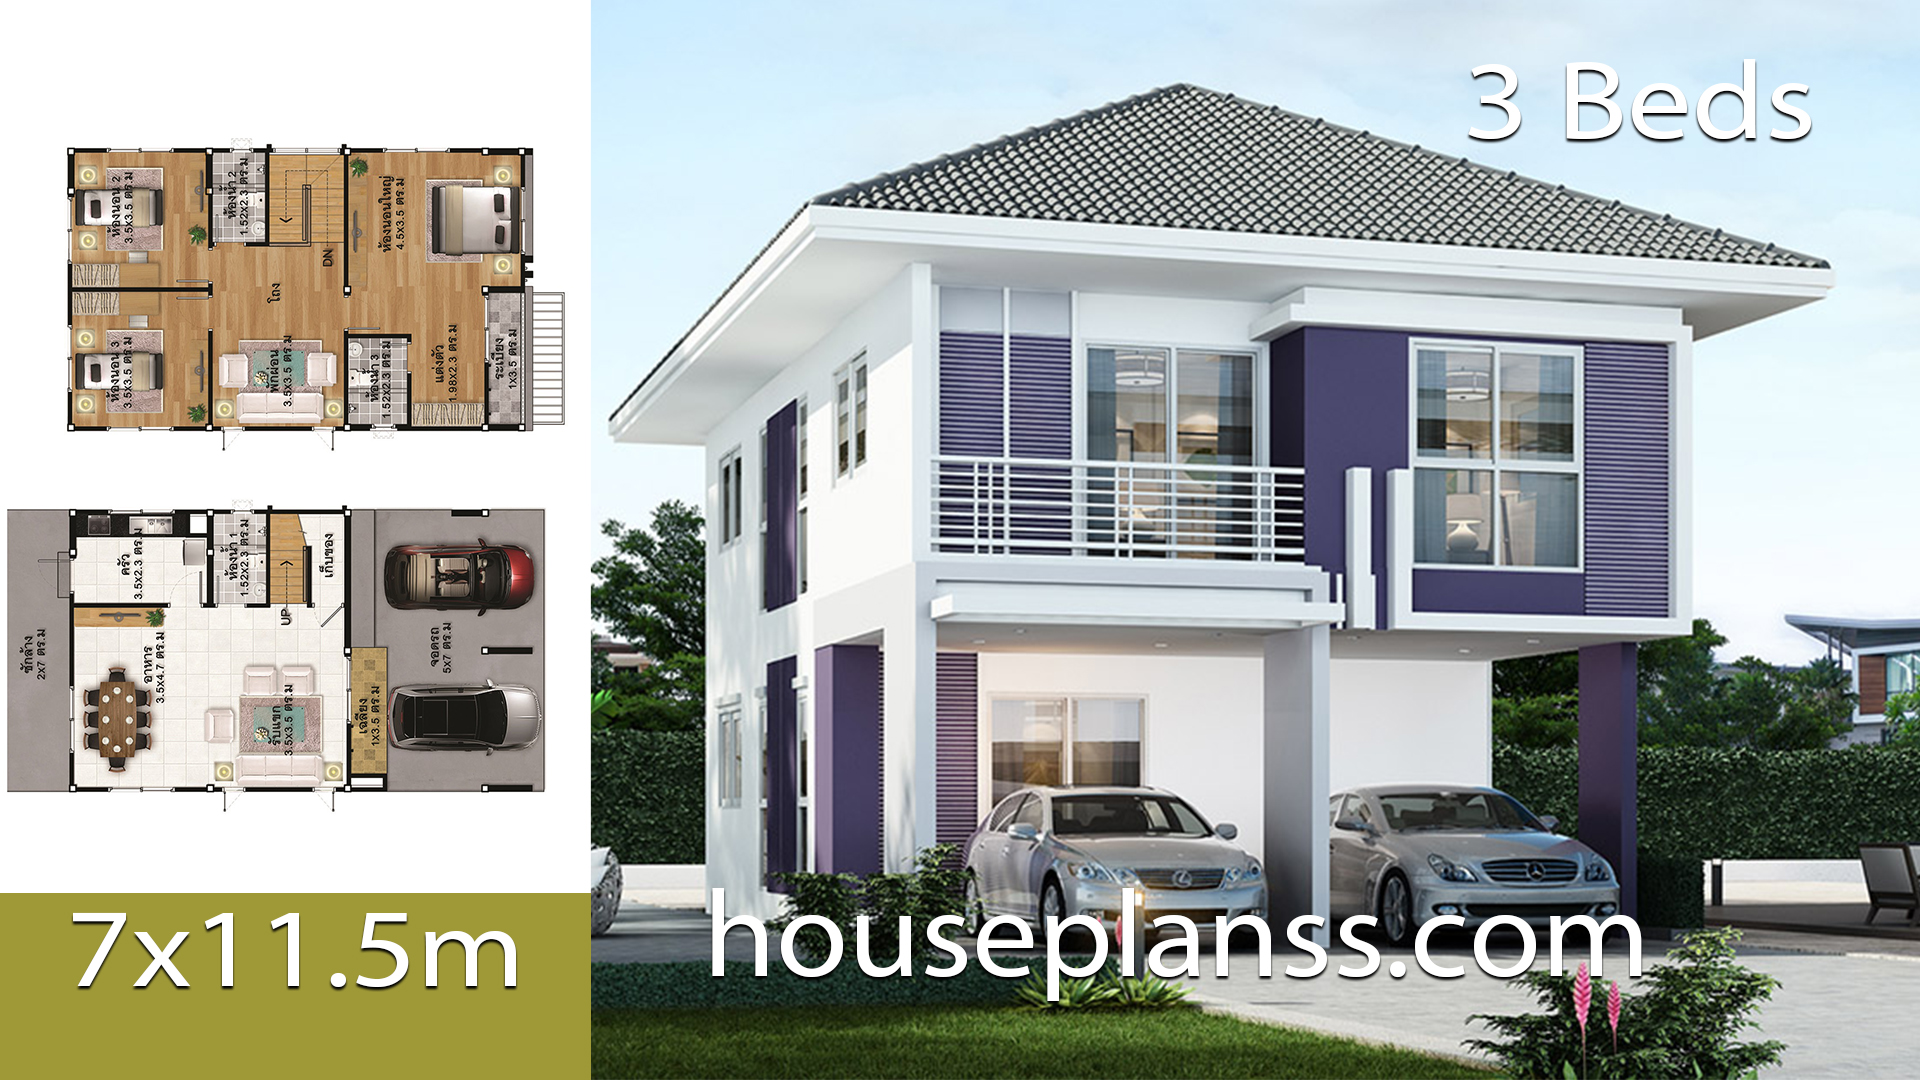 House design Plans Idea 7×11.5 with 3 bedrooms